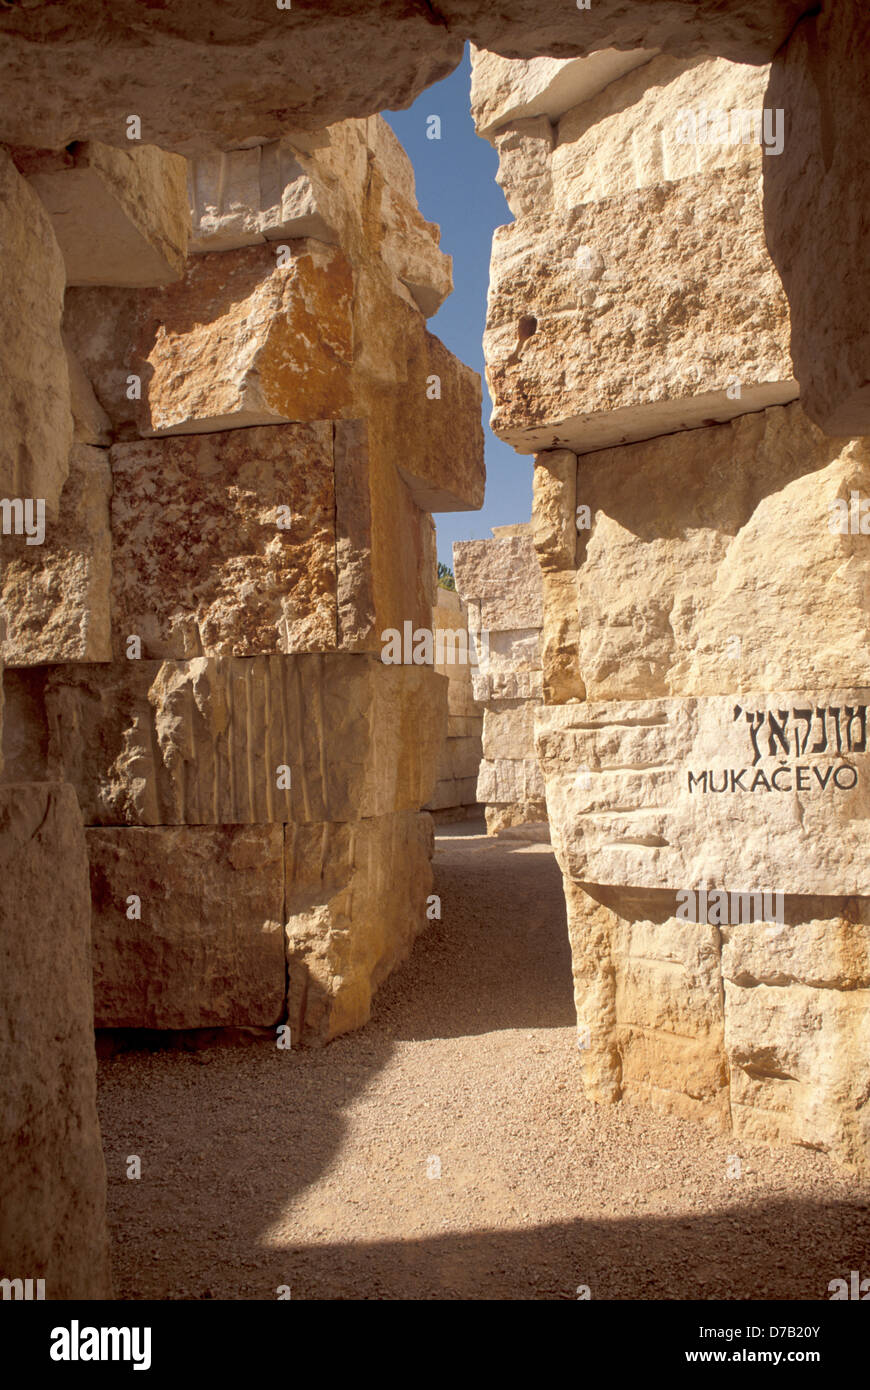 The Valley of the Communities at Yad Vashem Holocaust History Museum in Jerusalem - Stock Image